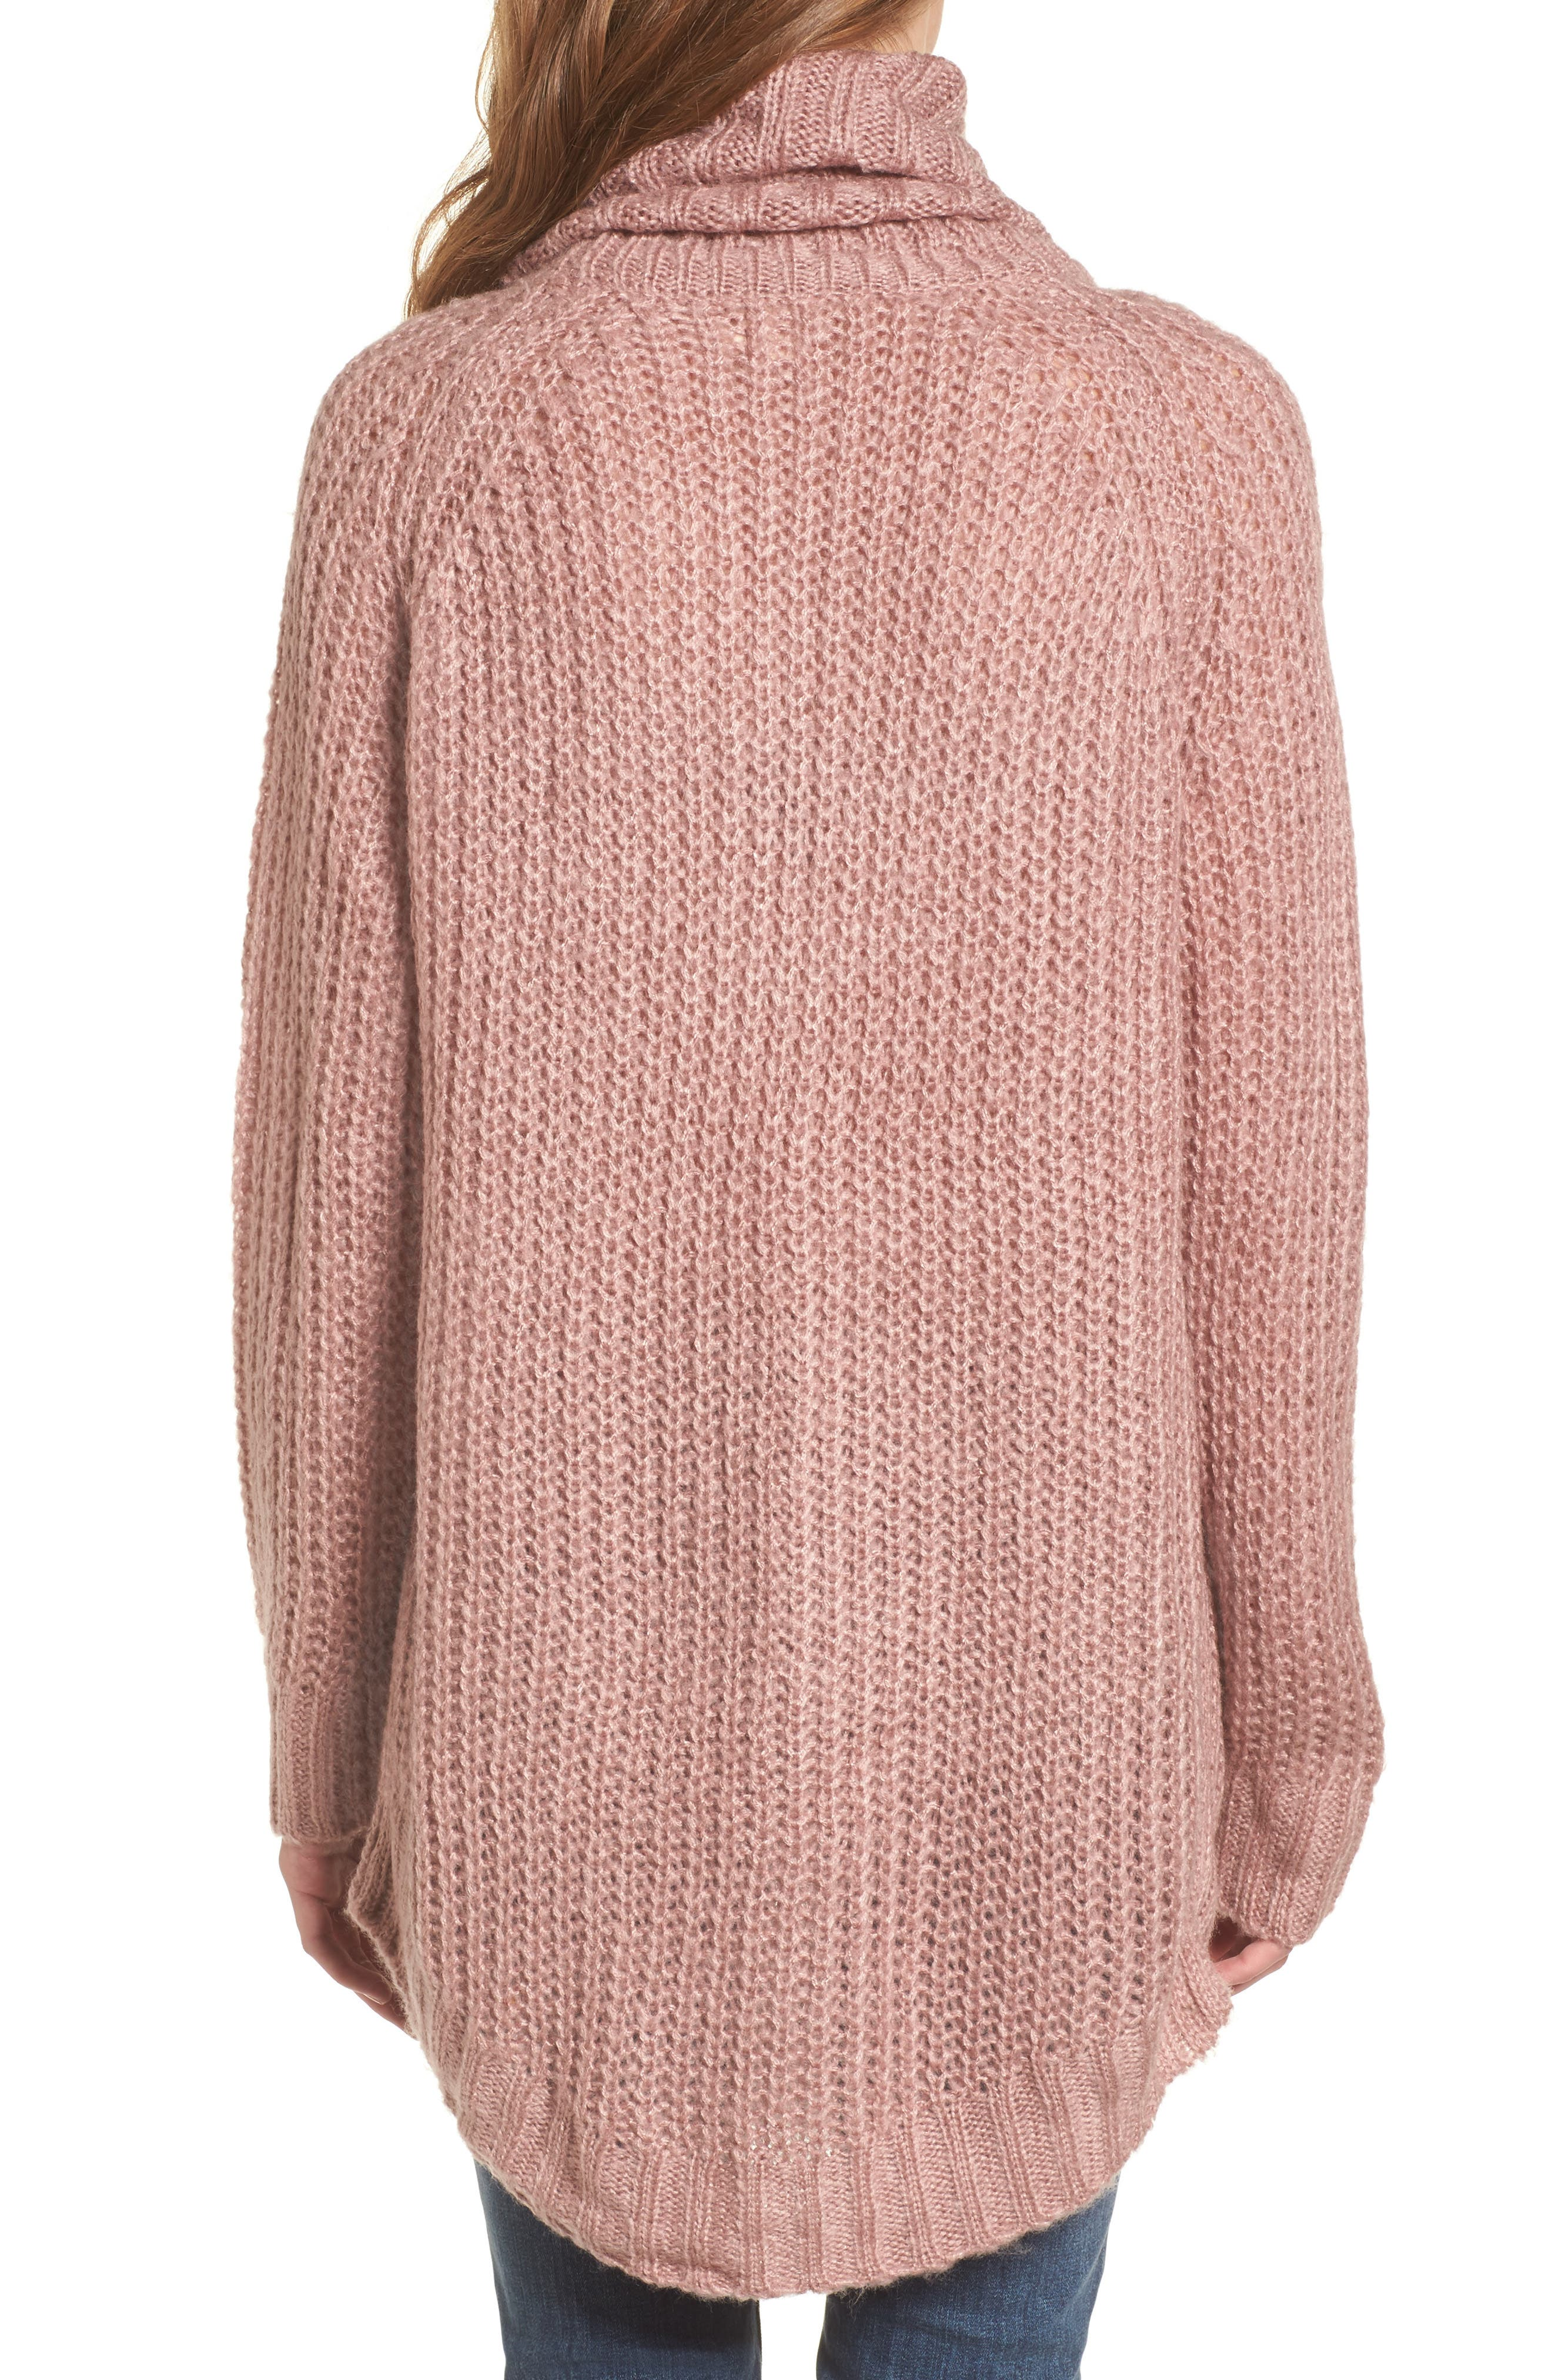 DREAMERS BY DEBUT, Cowl Neck Sweater, Alternate thumbnail 2, color, 680